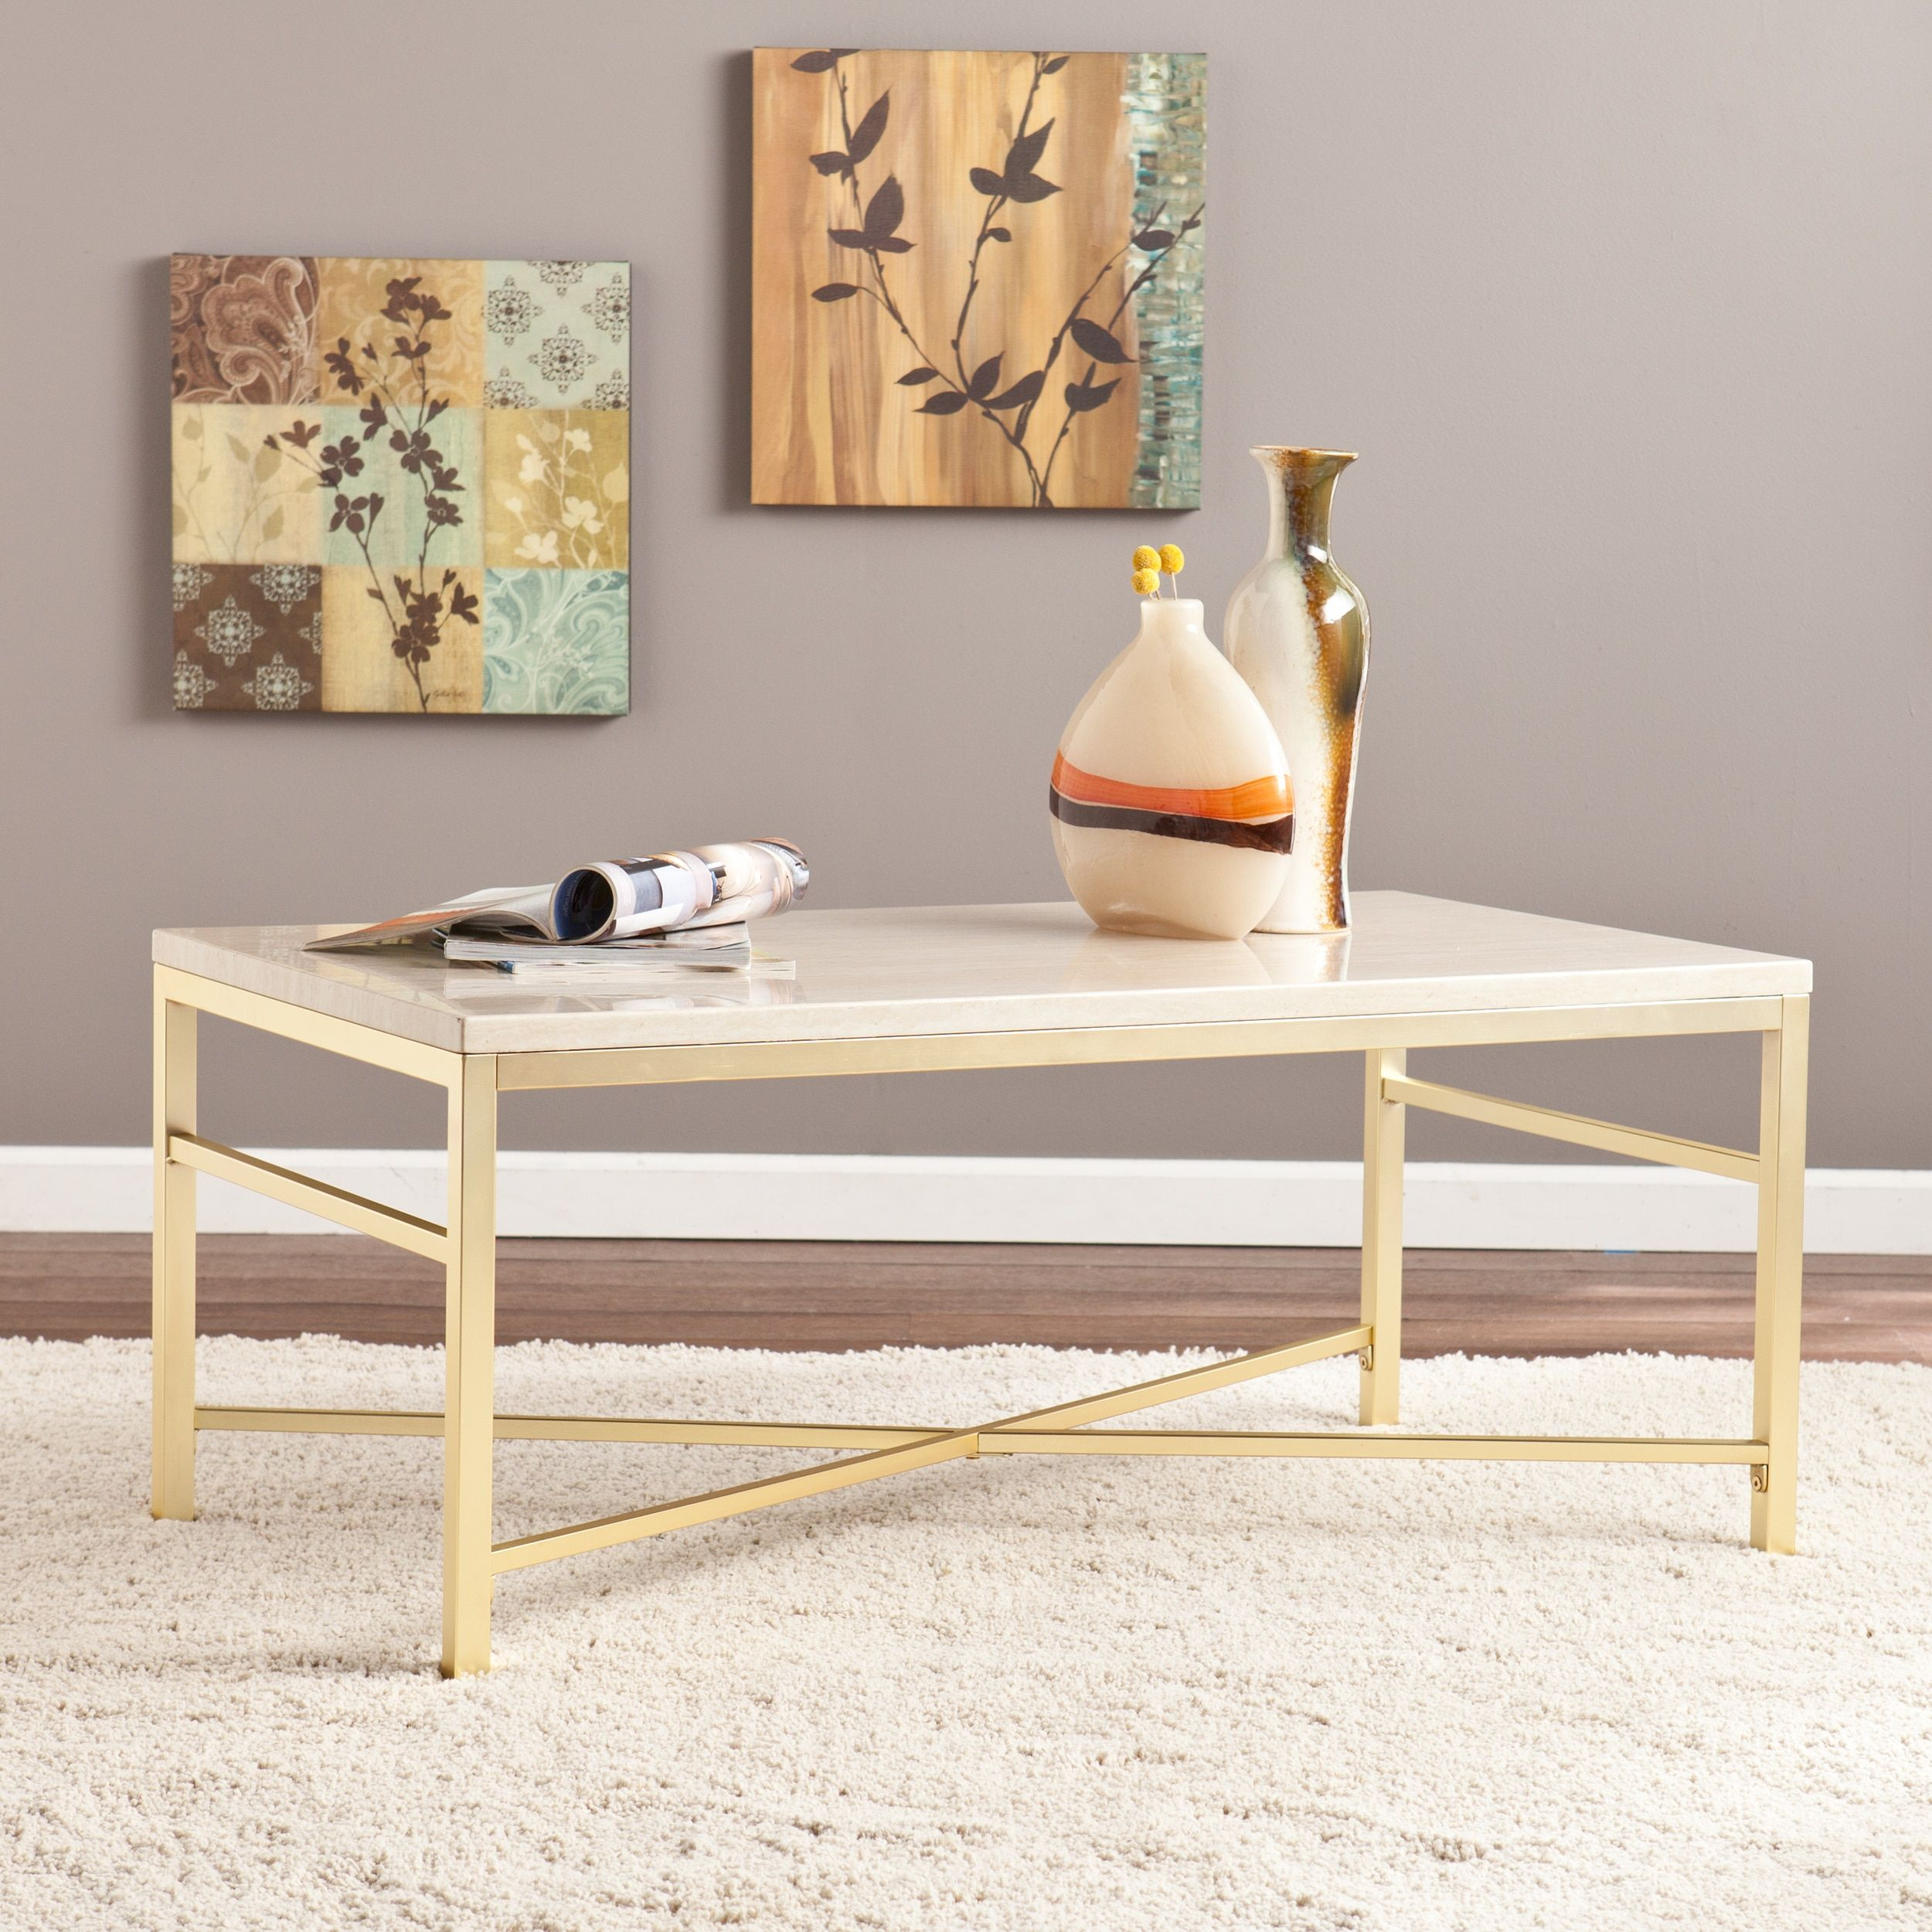 On sale Living Room Furniture  Free Shipping on orders over  45  Find the  perfect. On sale Living Room Furniture  Free Shipping on orders over  45